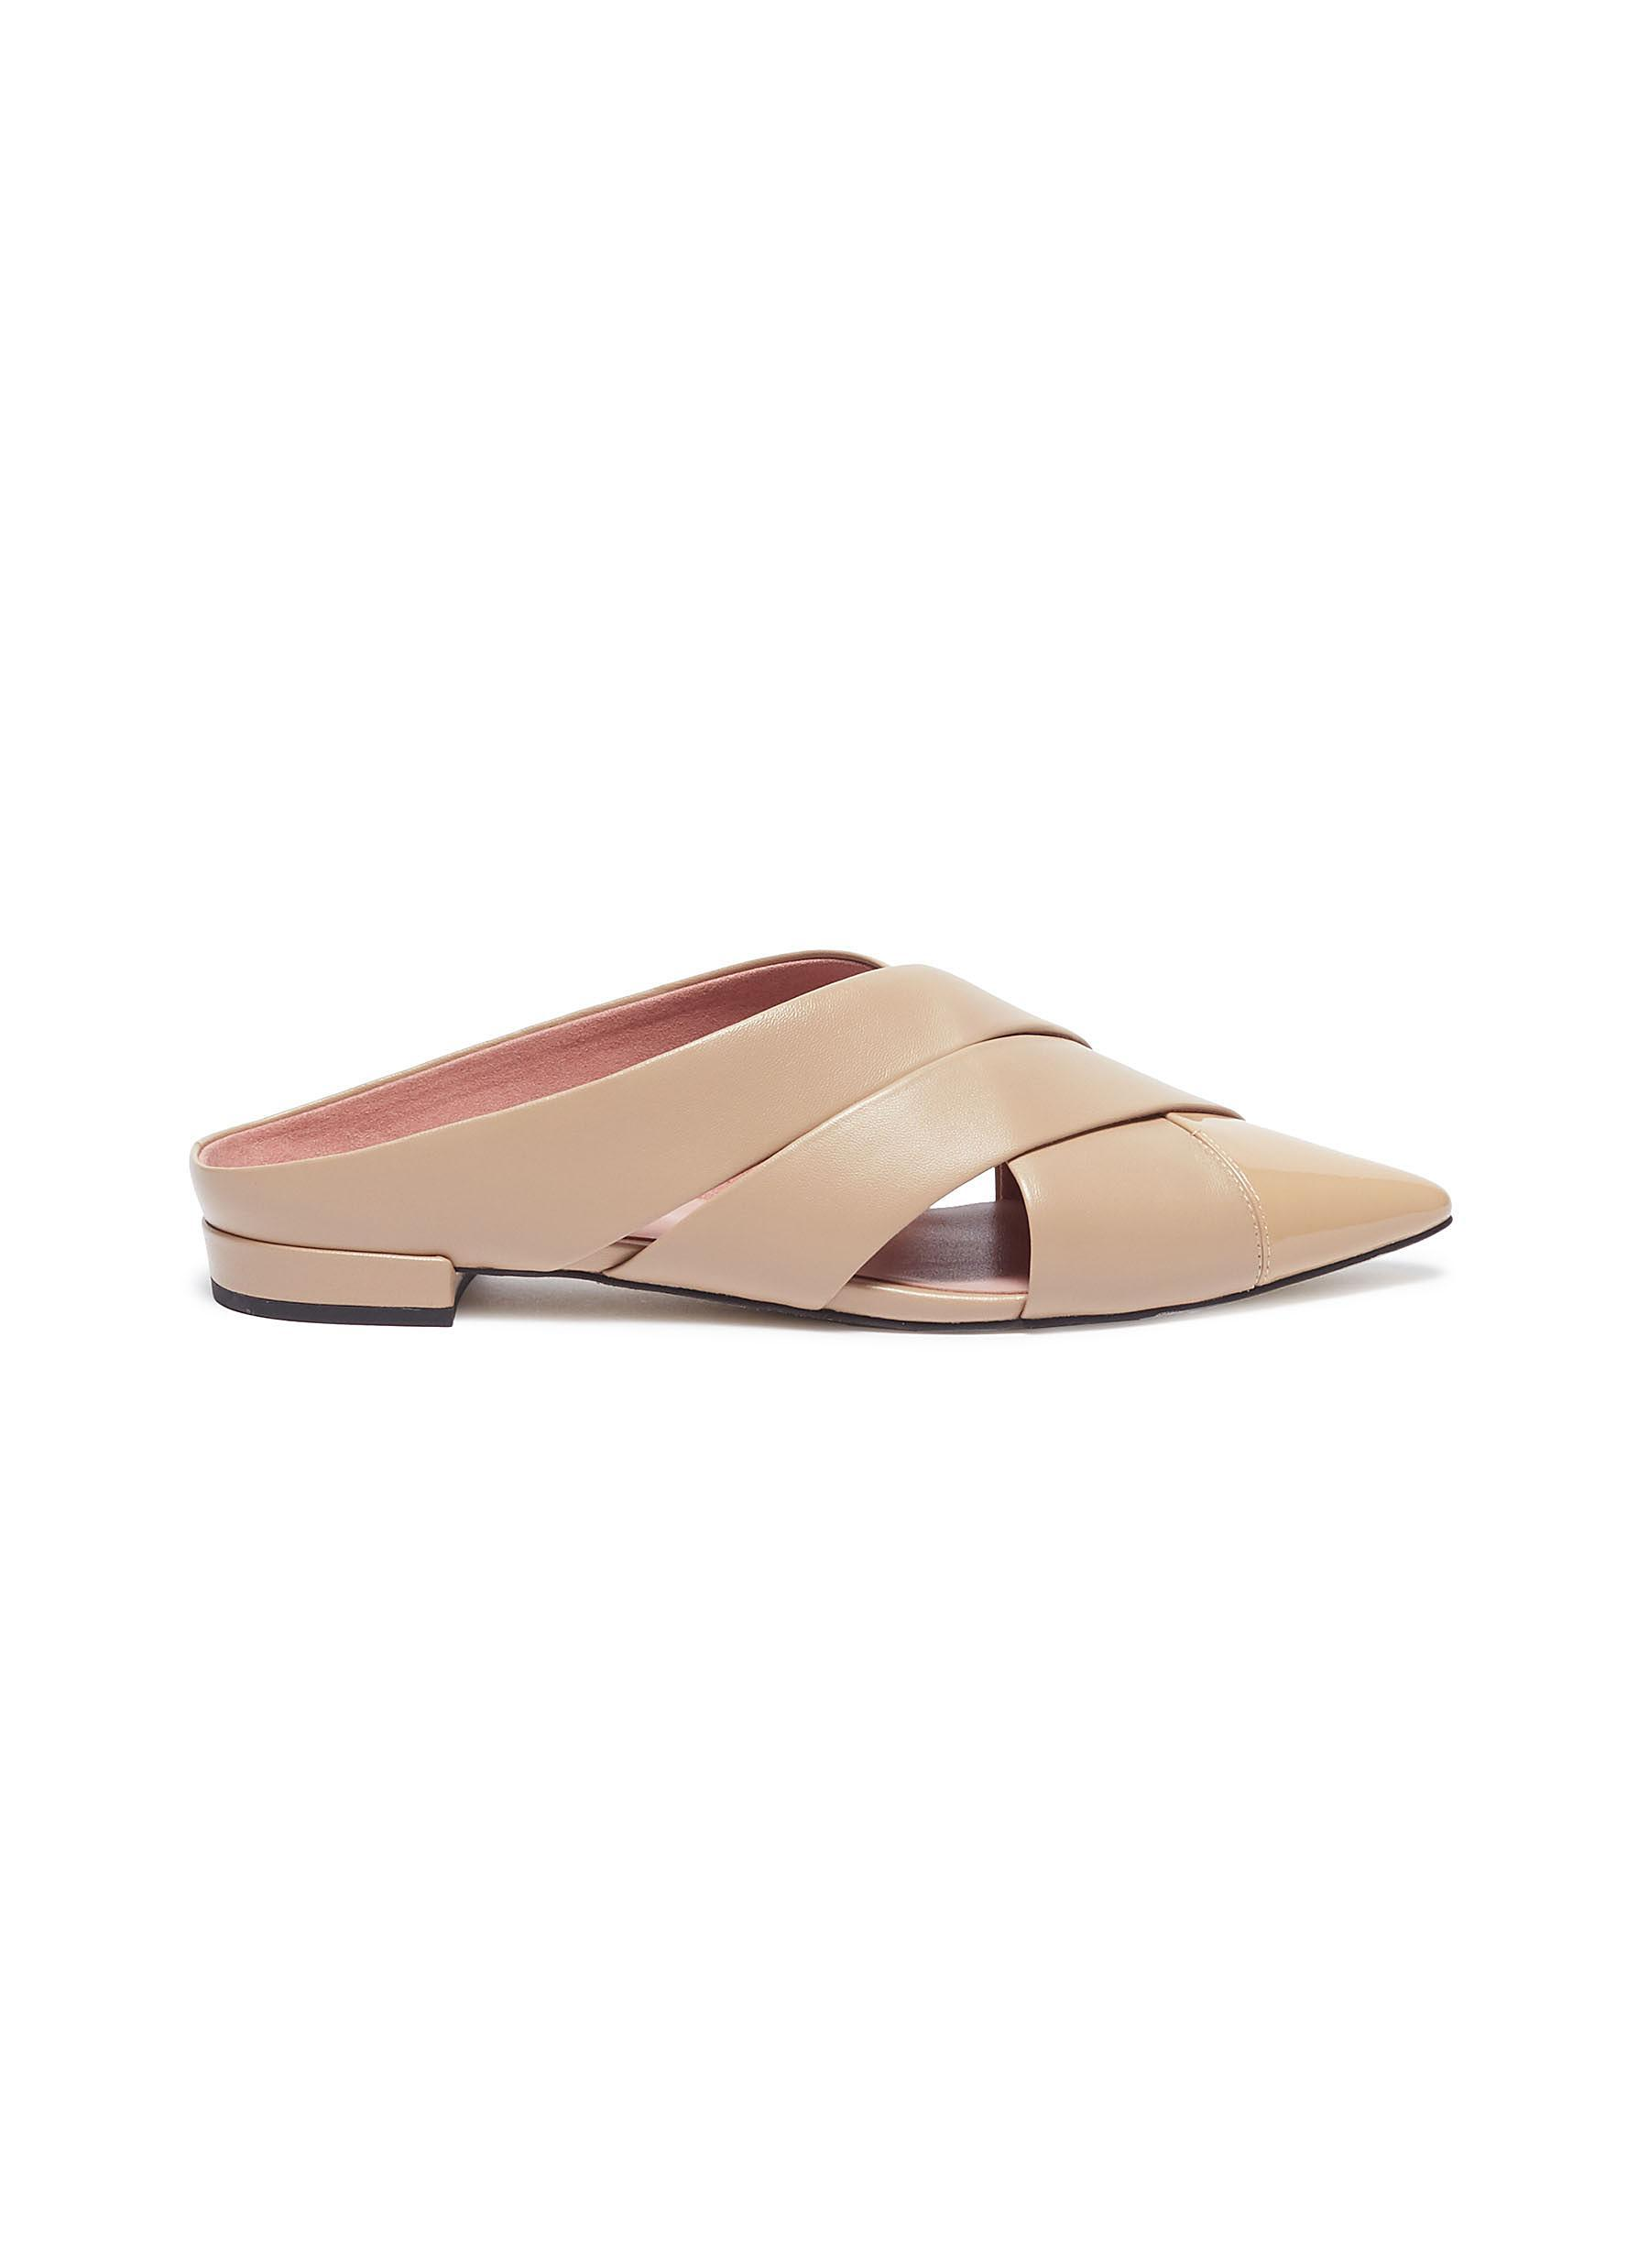 6213fb9a7 Lyst - Pedder Red 'willa' Cutout Cross Leather Slides in Natural